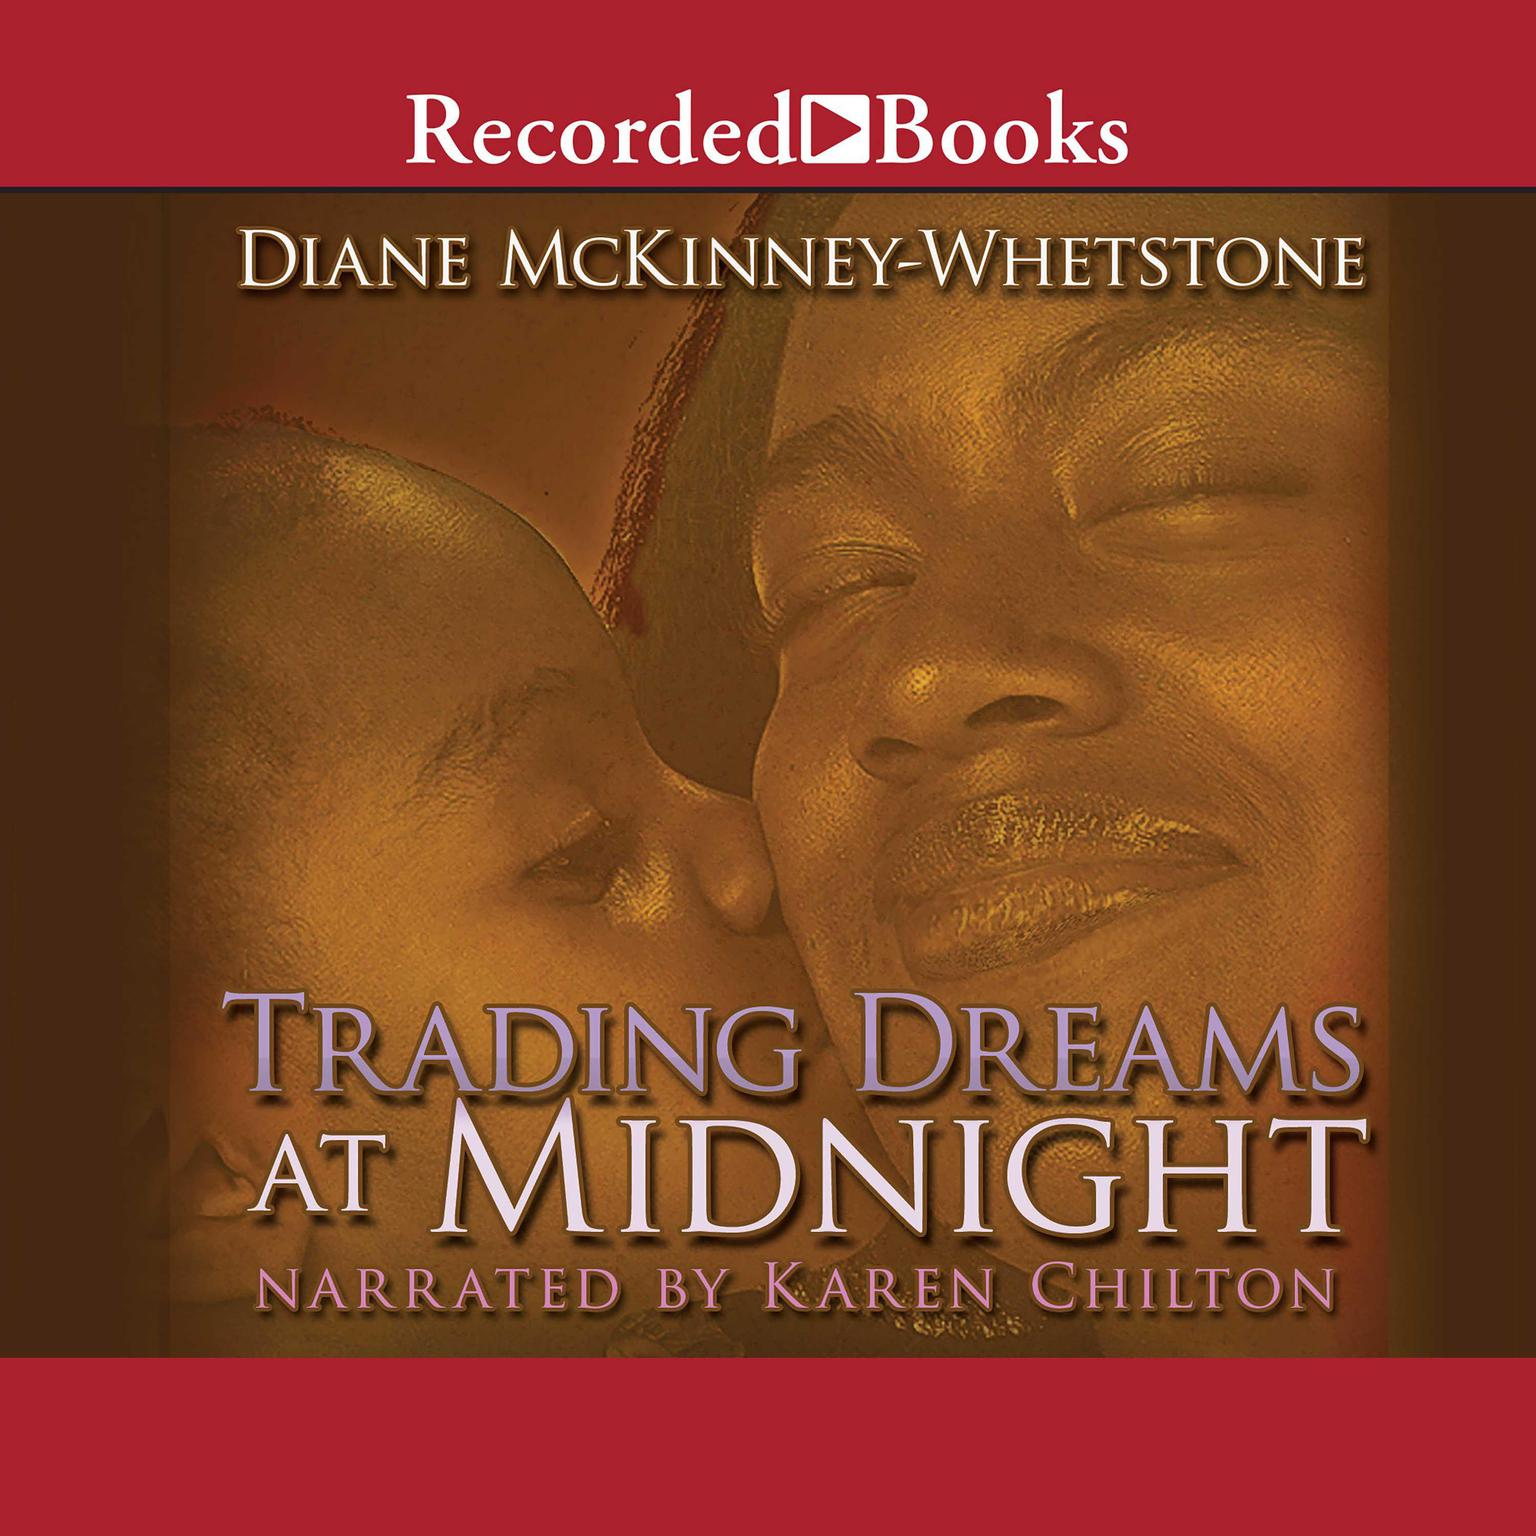 Printable Trading Dreams At Midnight Audiobook Cover Art